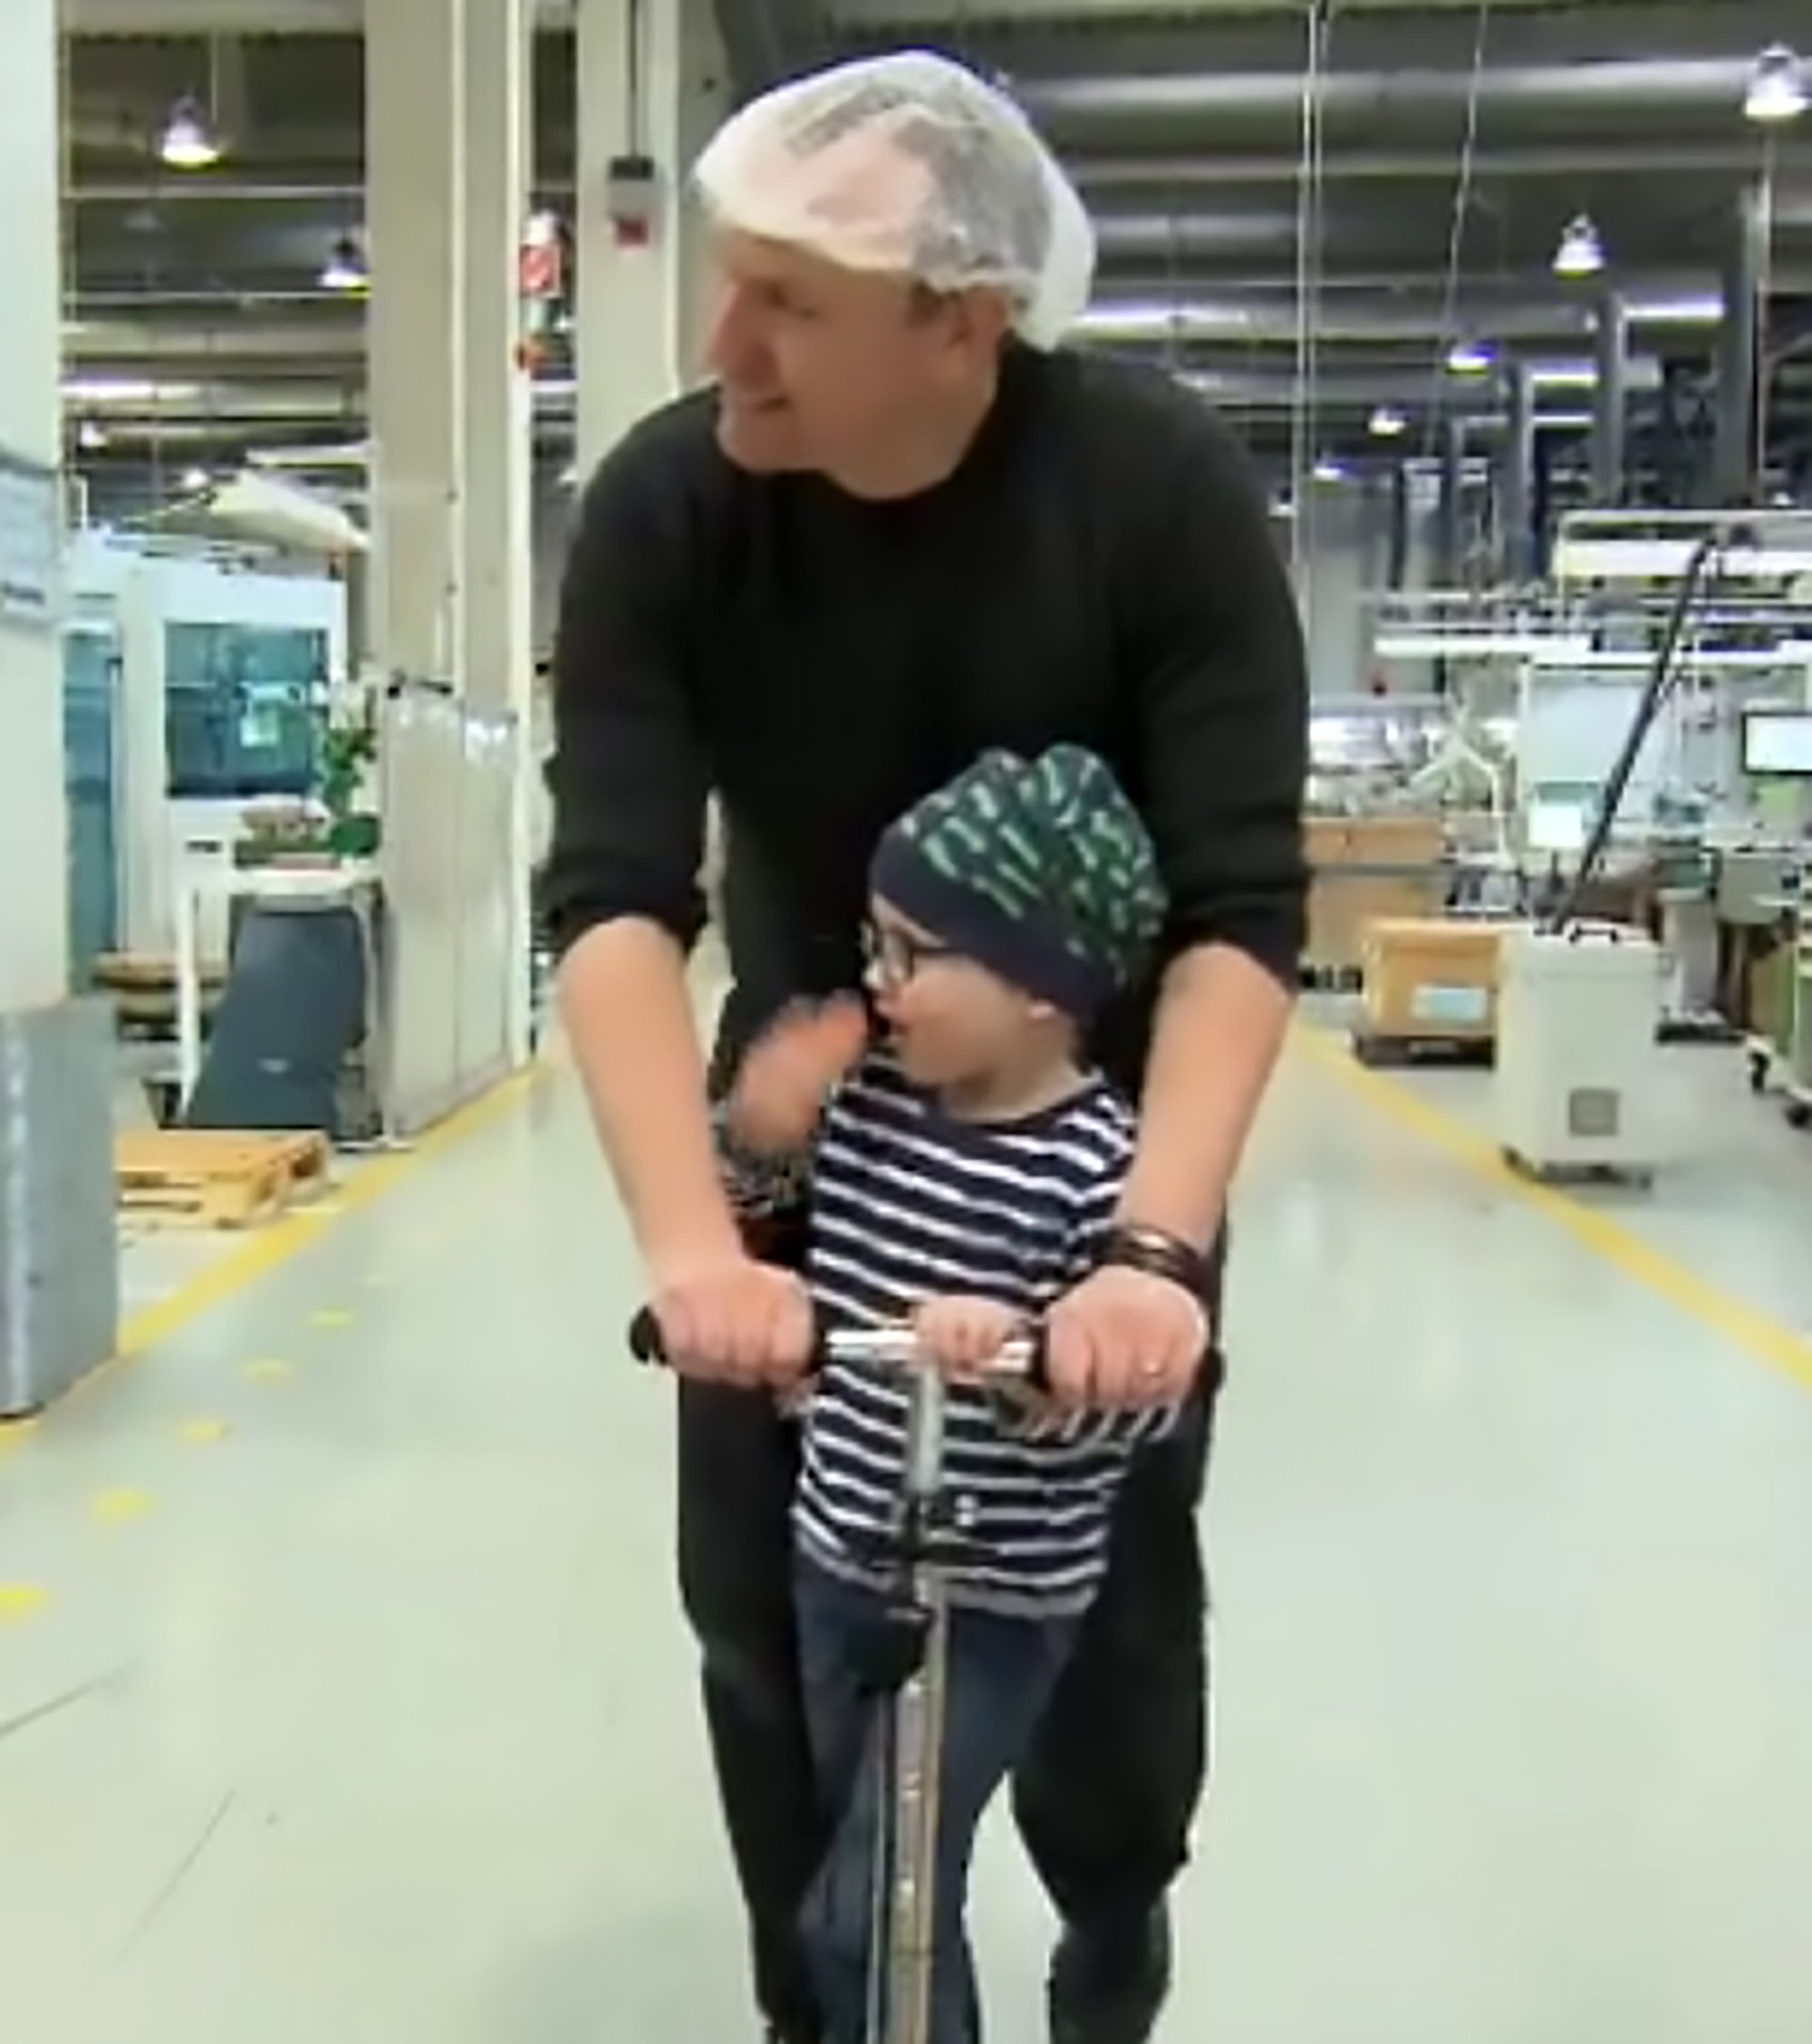 """Pics shows: Andreas Graf shows his son Julius around the assembly plant where he works; A dad's colleagues have donated nearly 3,300 hours of overtime so he could be by his young son's bedside as he fought leukaemia following the sudden death of the boy's mum. Little Julius was just three years old when he was diagnosed with leukaemia and his treatment kept him in a hospital bed for the first nine weeks. He was about to return to the family home, in the town of Fronhausen in the central German state of Hesse, when his mother died of heart disease. Andreas Graf, 36, ended up having to take all his annual leave from his job as an assembly worker with a design company in the nearby town of Marburg to be with his son. Mr Graf, struggling to cope with his son's illness and the death of his wife, was afraid of losing his job until HR manager Pia Meier stepped in to help out. She sent out an appeal to Mr Graf's employees to donate their overtime. And all of the company's 650 workers immediately signed up - even those who had never met him. Within two weeks of the appeal, they had raised a total of 3,264.5 hours which the company allowed Mr Graf to take as paid leave, bringing tears to his face. """"Without this tremendous help, I would???ve been out of a job by now,"""" he admitted. Ms Meier said she had also been overwhelmed by the response, saying: """"There isn???t a single person who hasn???t donated."""" Thanks to the generosity of his colleagues, Mr Graf was able take more than a year off to take care of his son. After chemotherapy, Julius, who turned five at the end of February, is now feeling well enough to be released home and hopes to return to nursery school soon. Mr Graf says he will be eternally grateful to his colleagues and the company. He says he just wants to look positively into the future with his son."""